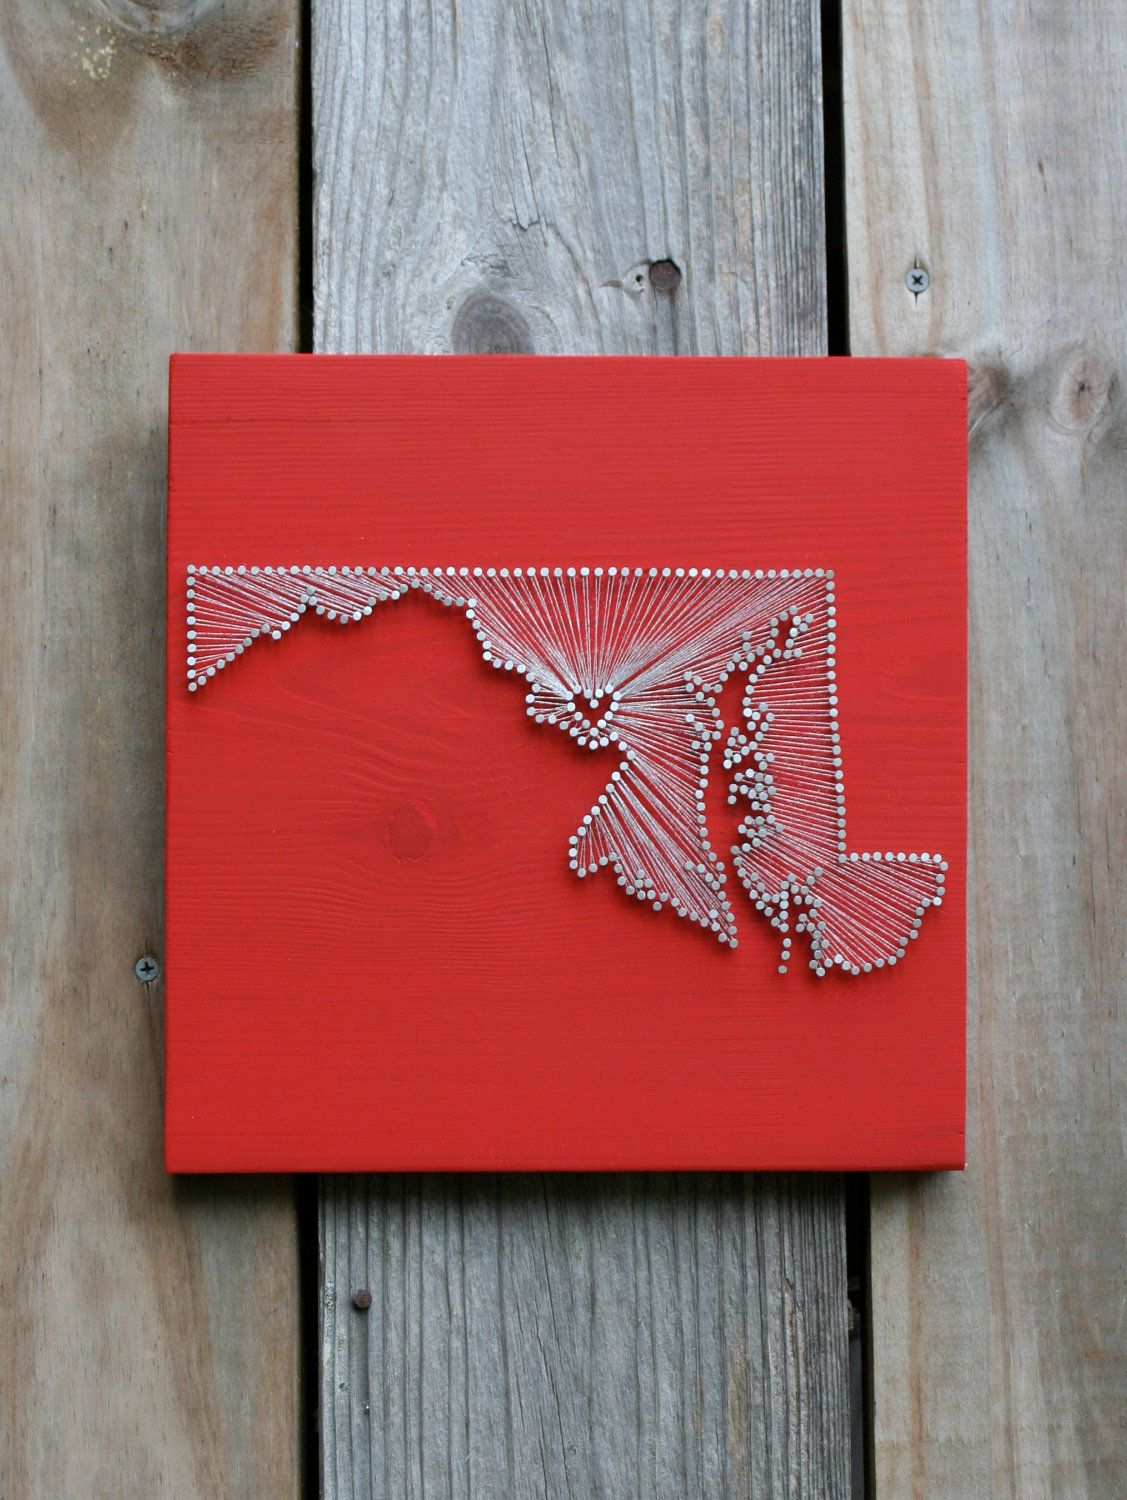 Maryland Love // Reclaimed Wood Nail and String Art Tribute to The Old Line  State - Maryland Love // Reclaimed Wood Nail And String Art Tribute To The